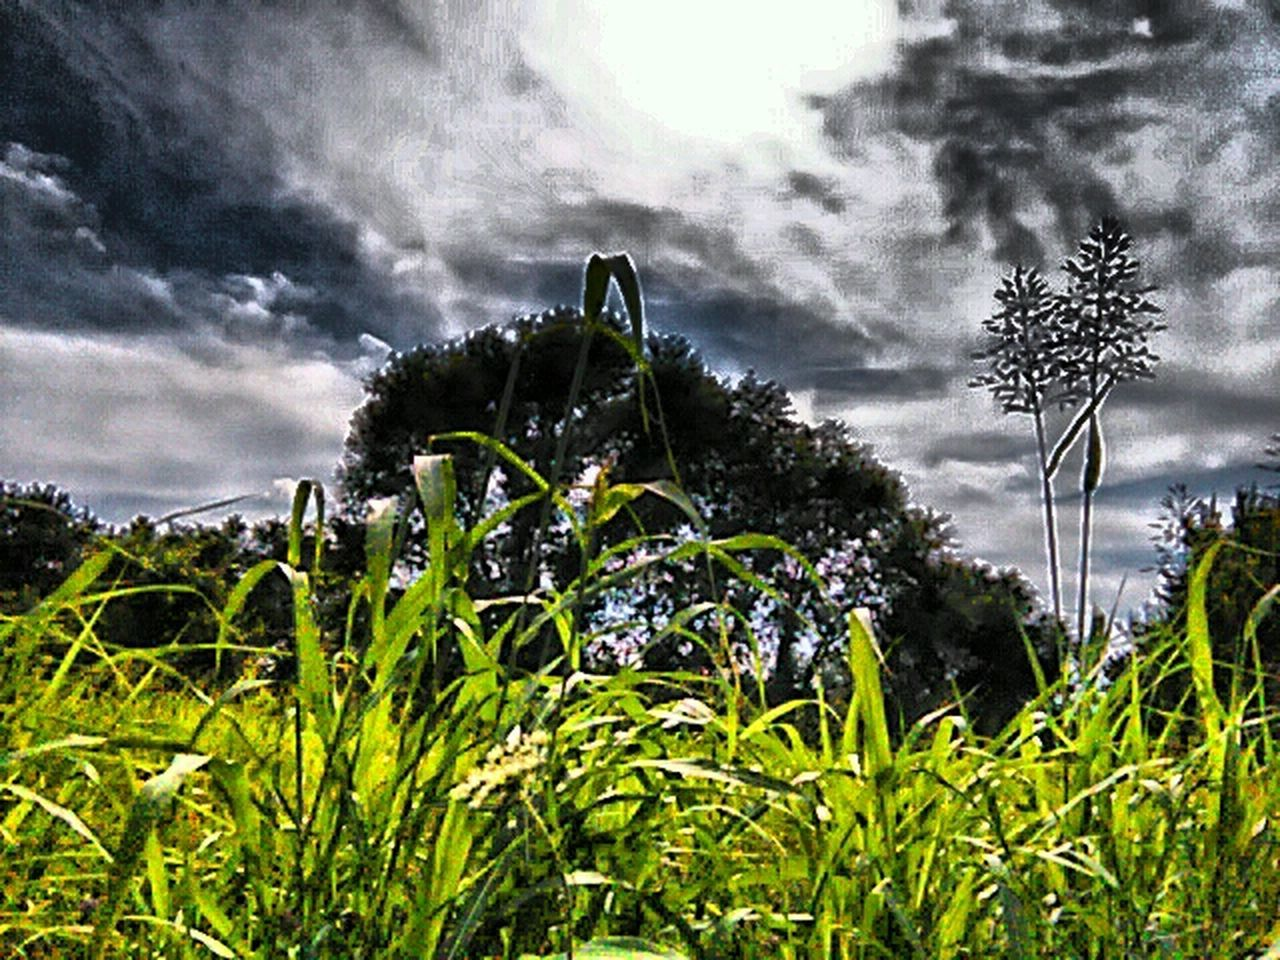 Nature Bugs View Landscapes Pointless Life Still Life Nature Is Art Eyeem Market EyeEm United States Of America Summer Views Showcase July Landscape EyeEm Nature Lover Nature_collection USA Photos God's Creation Nature Photography EyeEm USA  Popular HDR Beauty In Nature Eyeem Trending New On Market TRENDING  Beauty Is In The Eye Of The Beholder EyeEm Gallery